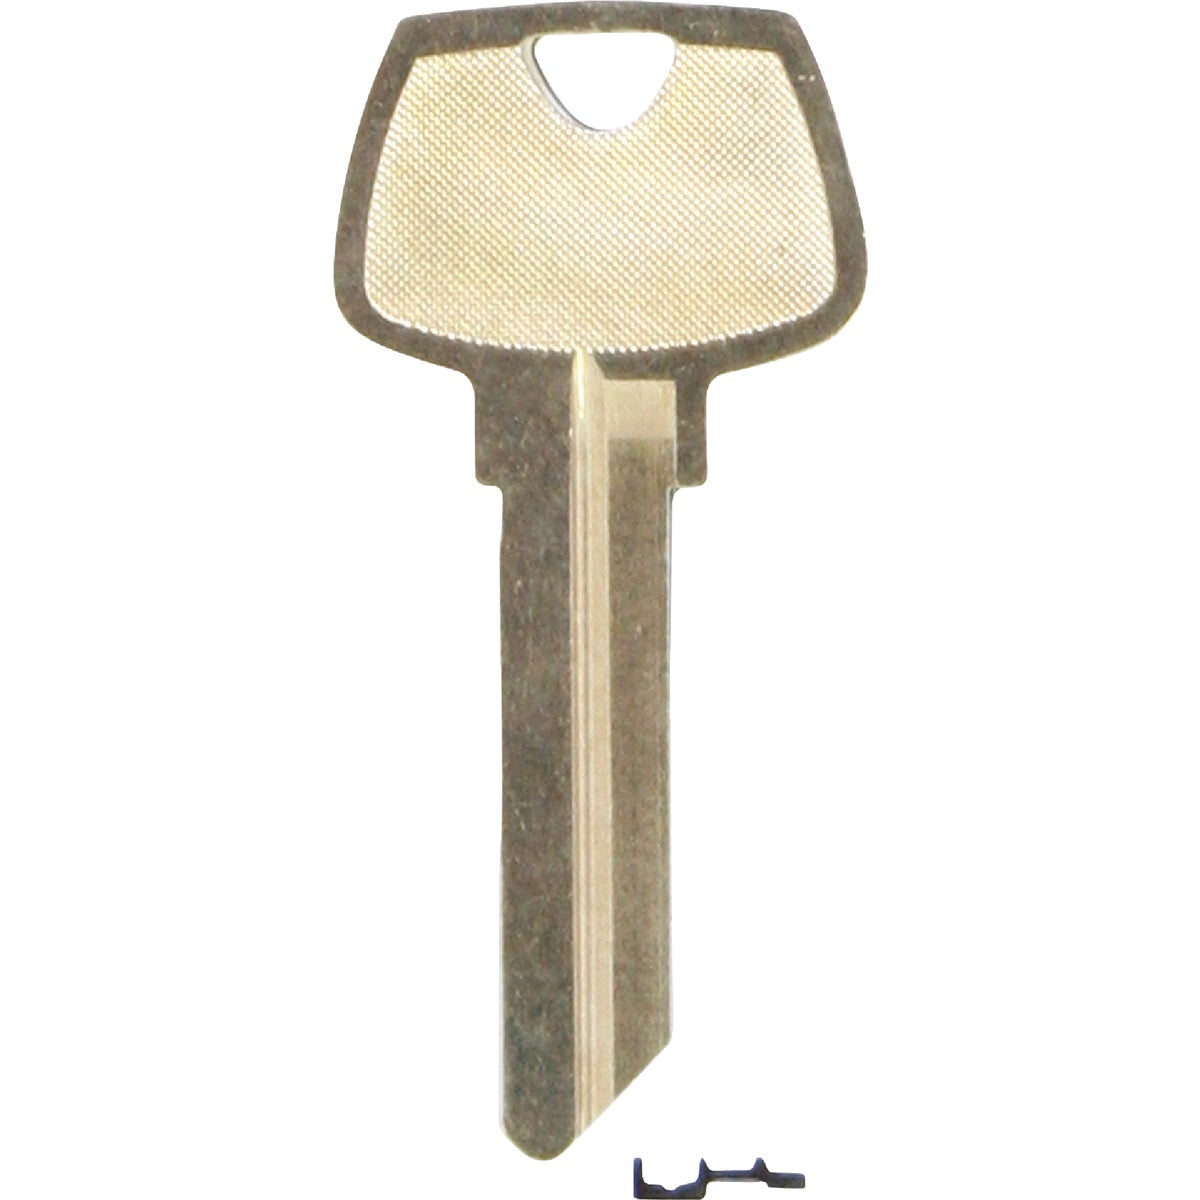 01007LA SARGENT DOOR KEY - O1007LA by Ilco Corp